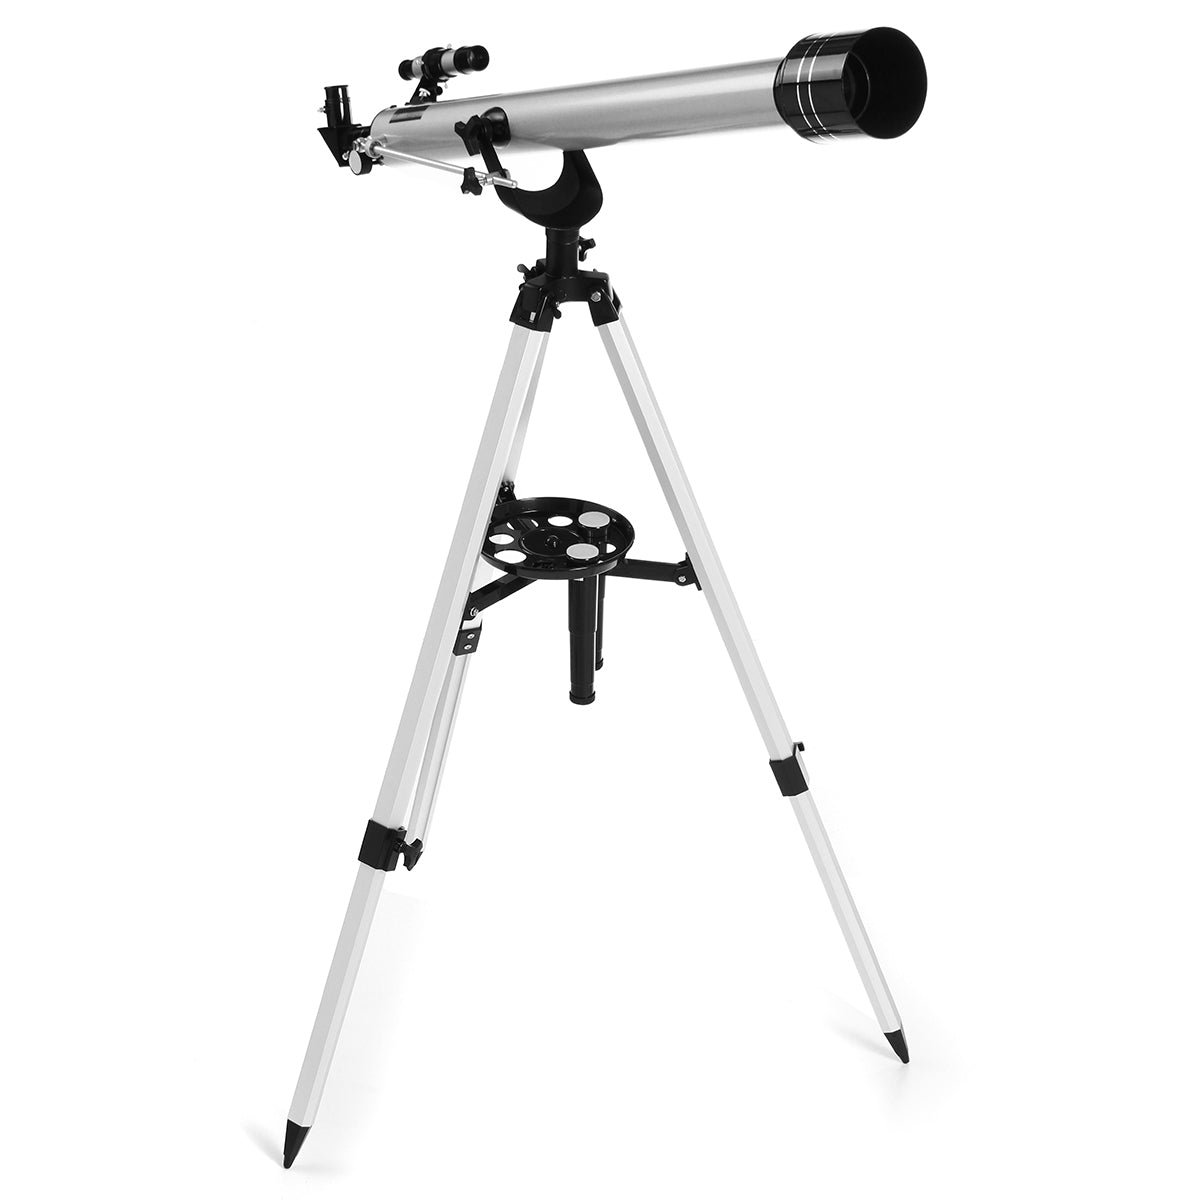 675x High Magnification Astronomical Telescope